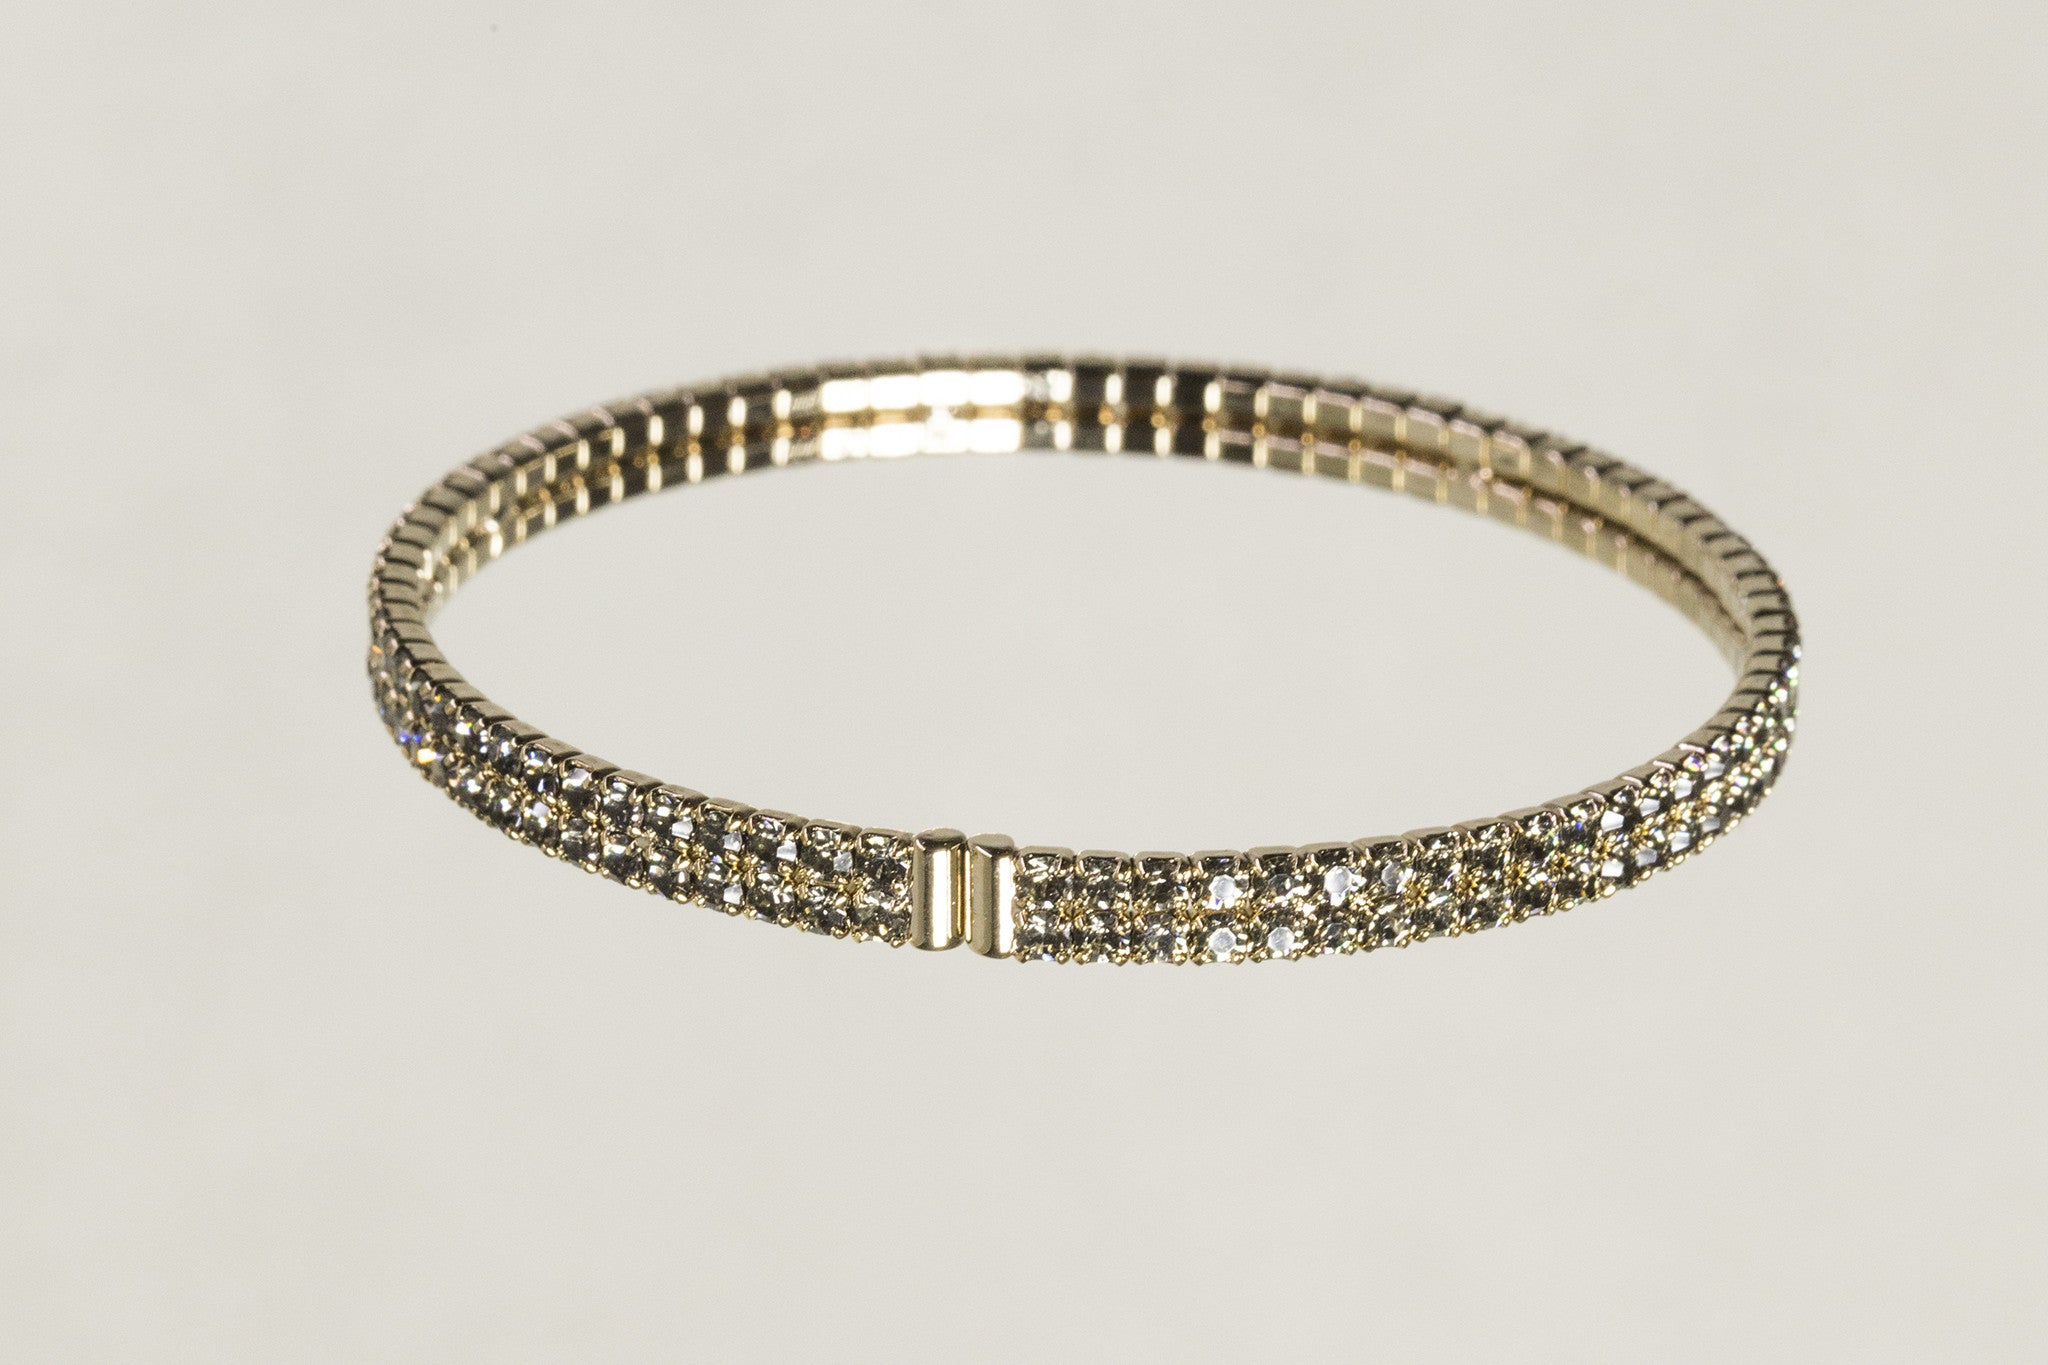 the back of the bangle - the bangle is easy to pull apart and is comfortable on the wrist